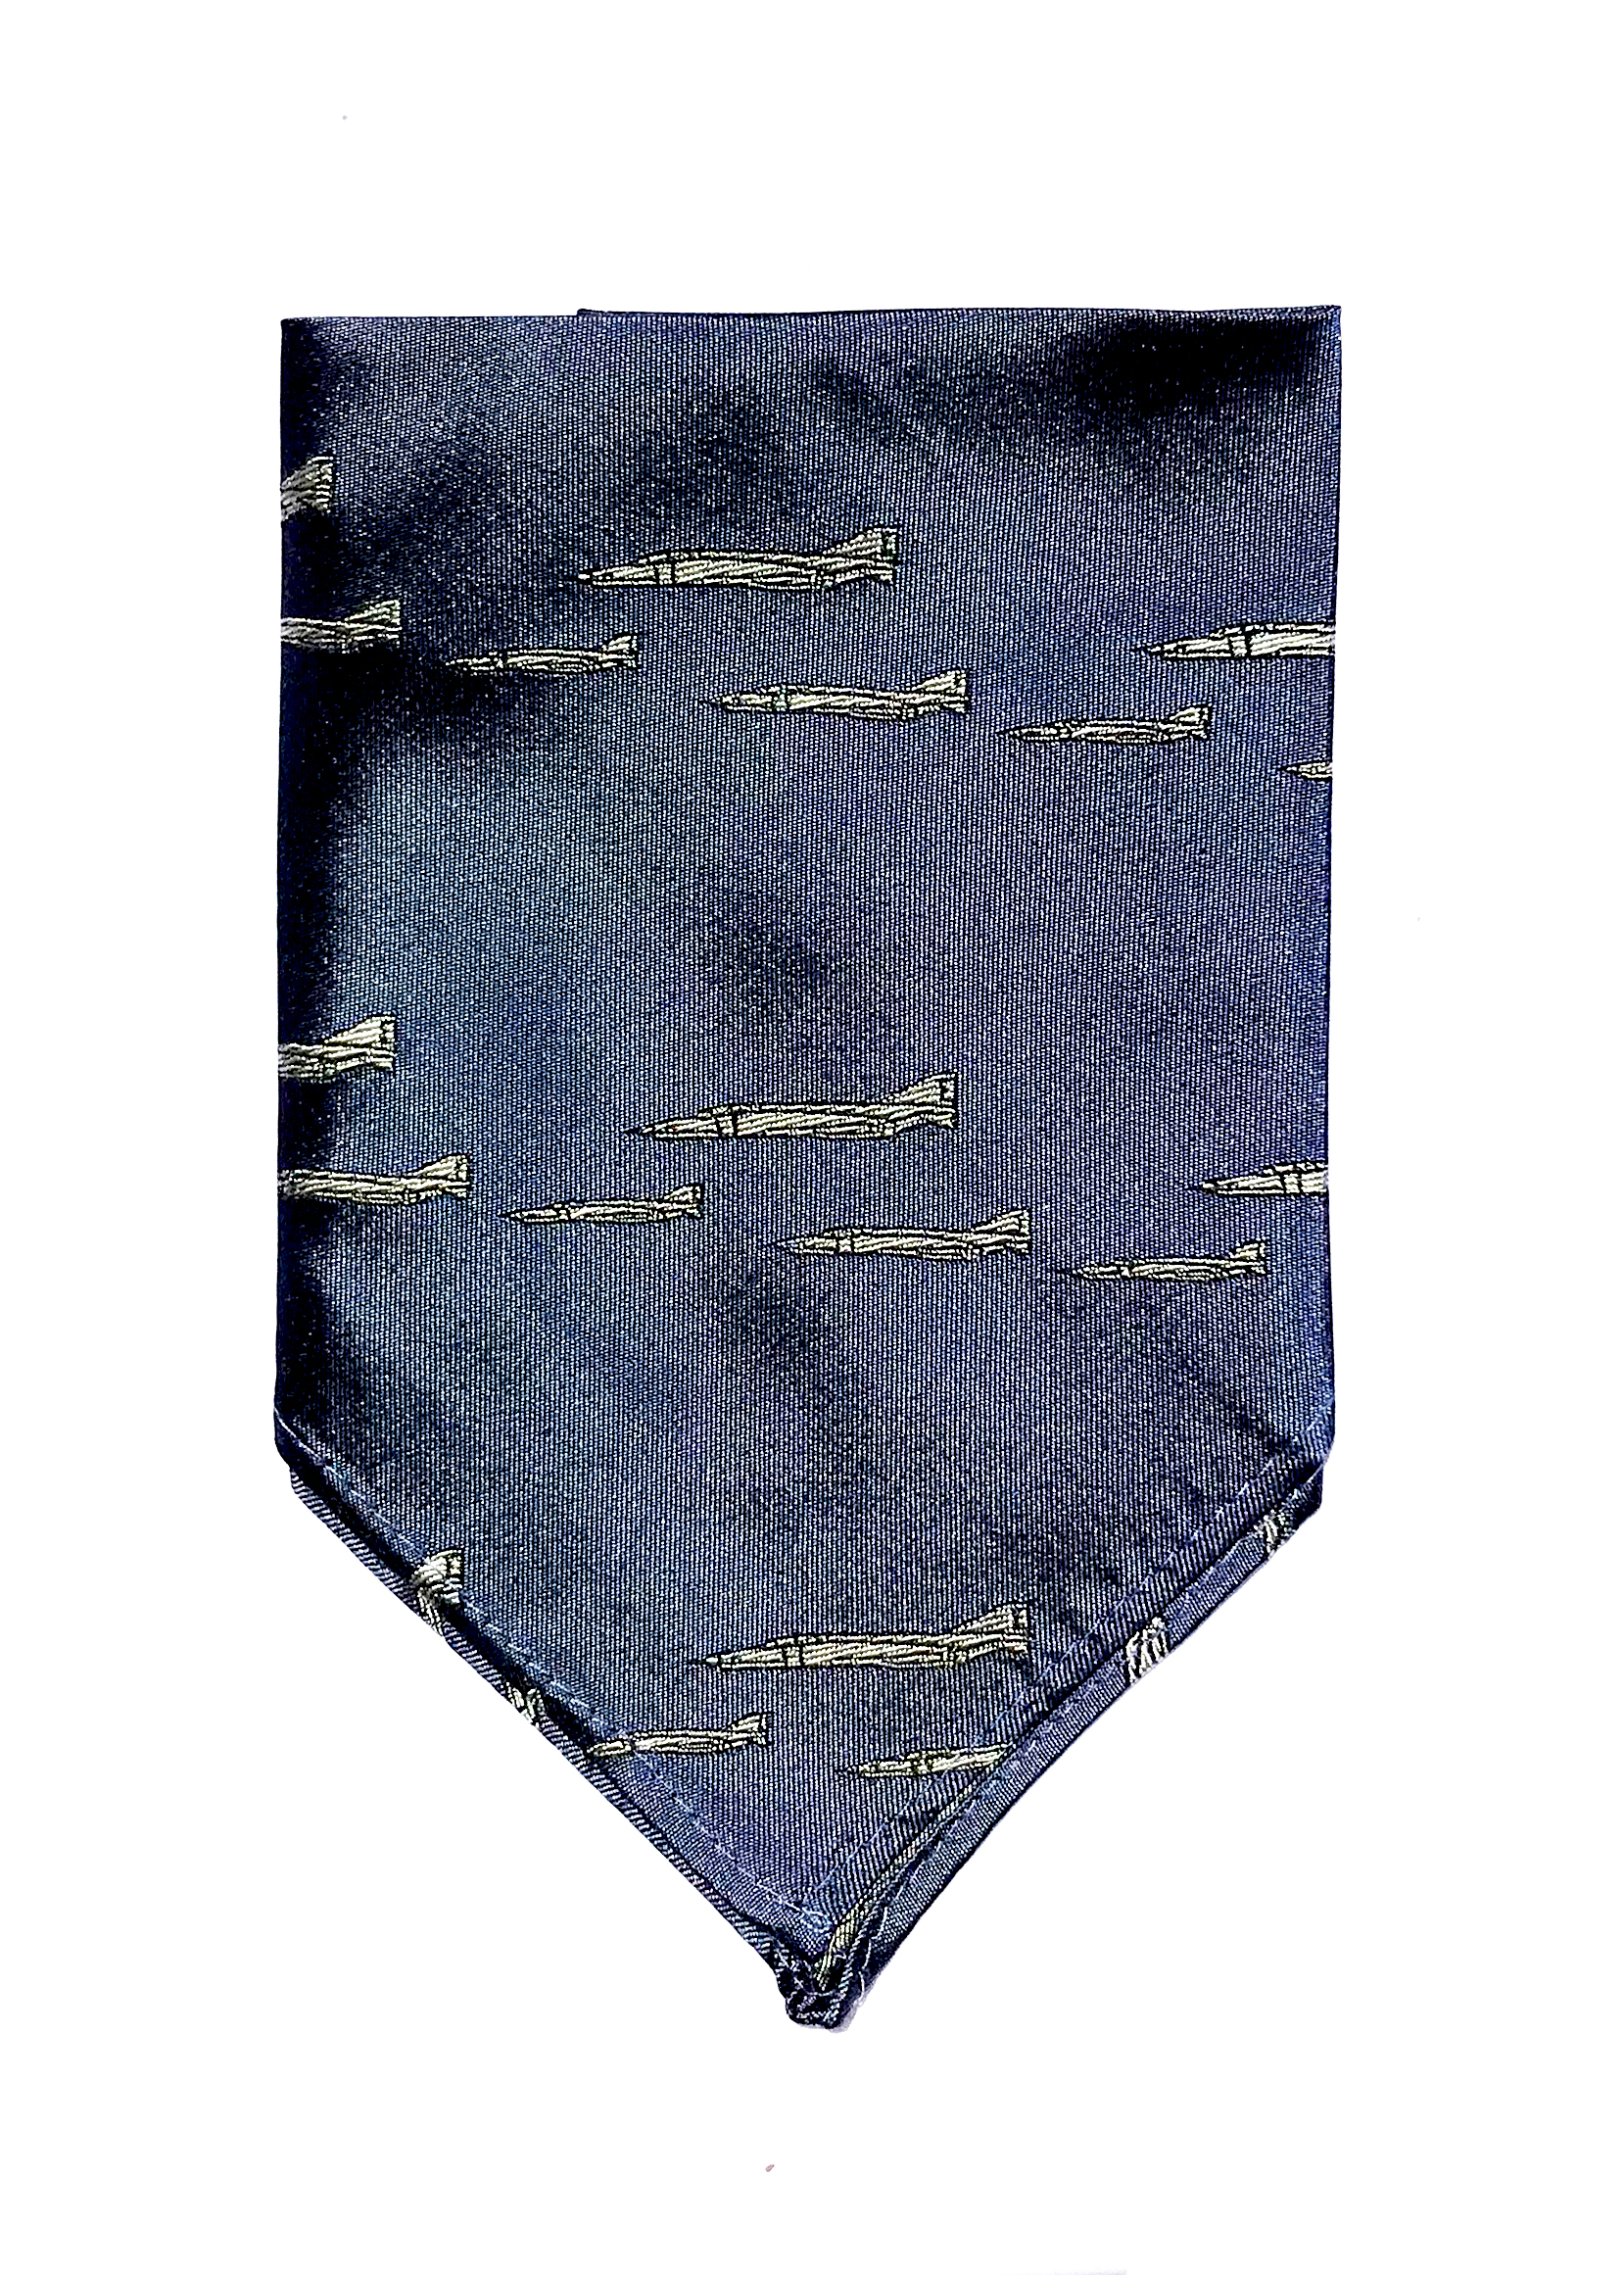 doppeldecker design aviation aircraft airplane pocket square f4